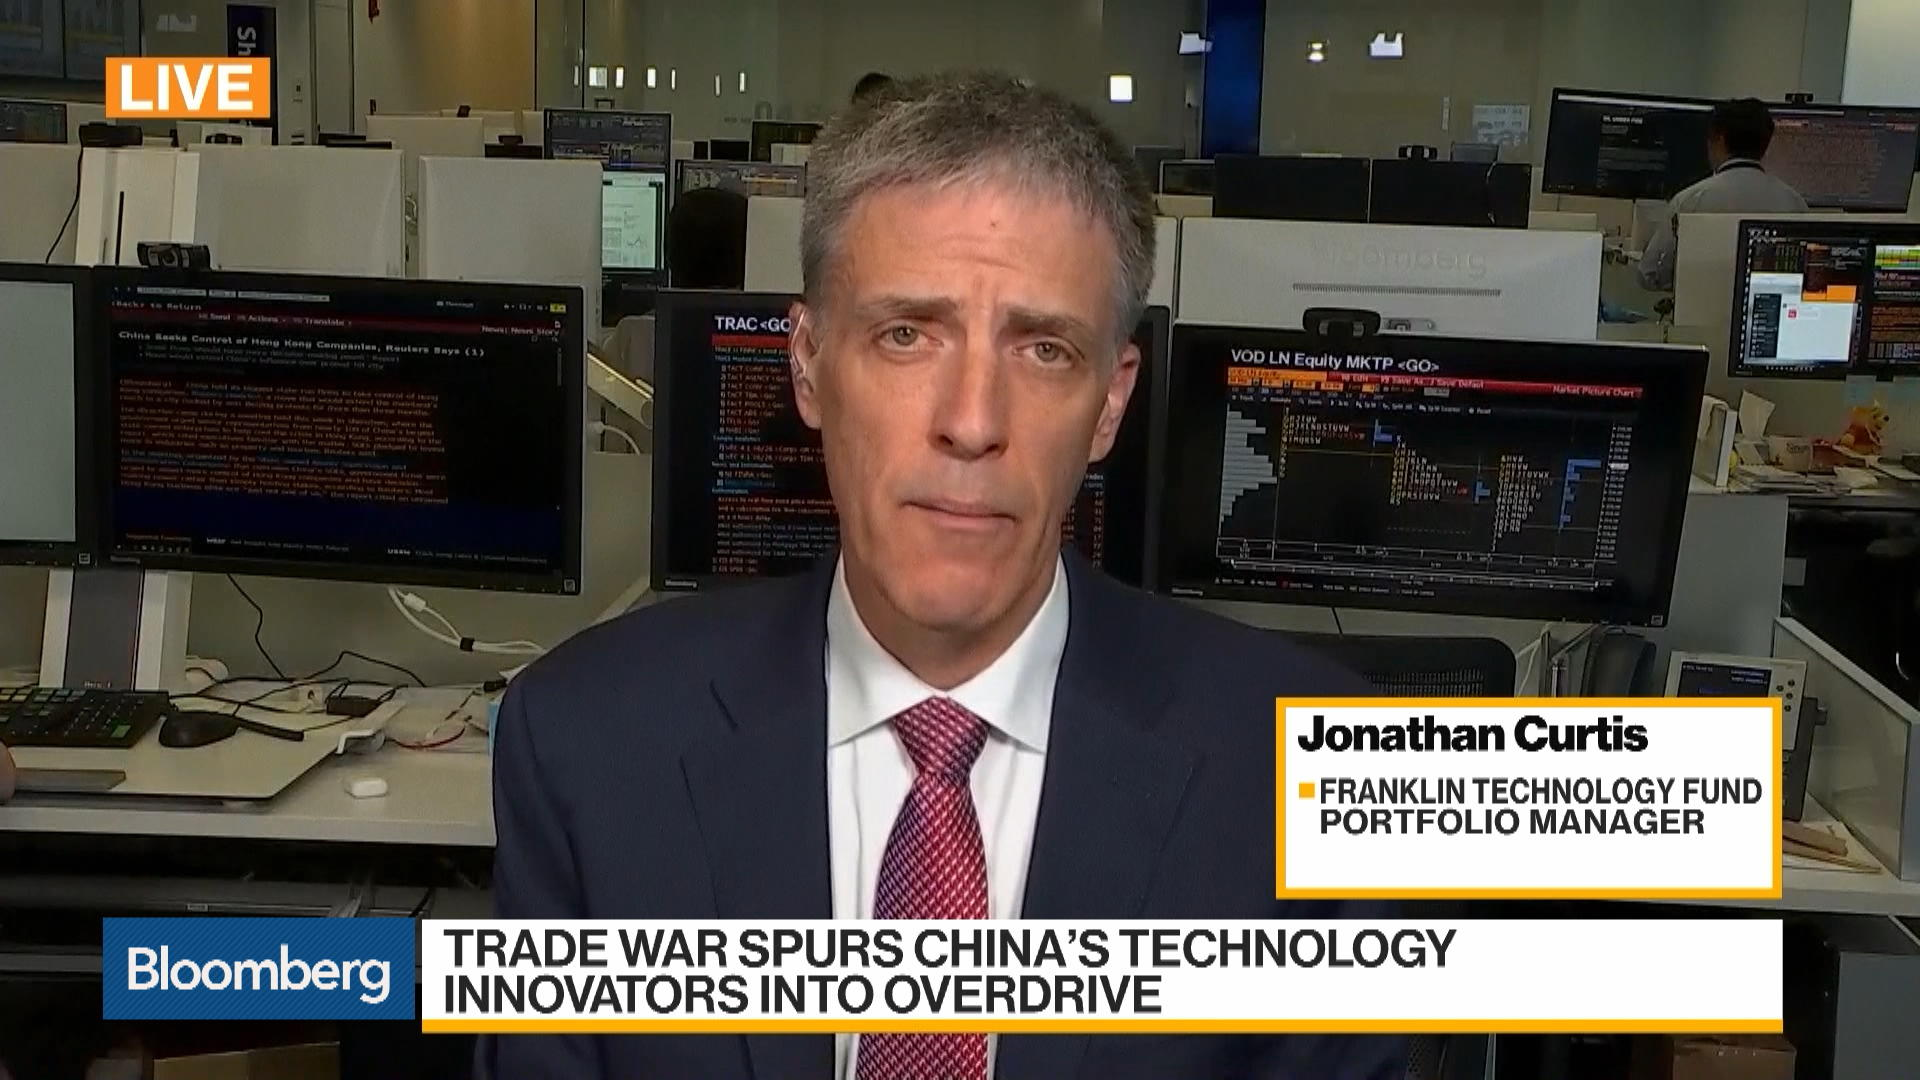 Jonathan Curtis, Franklin Technology Fund Portfolio Manager, on U.S.-China Trade War, Opportunities